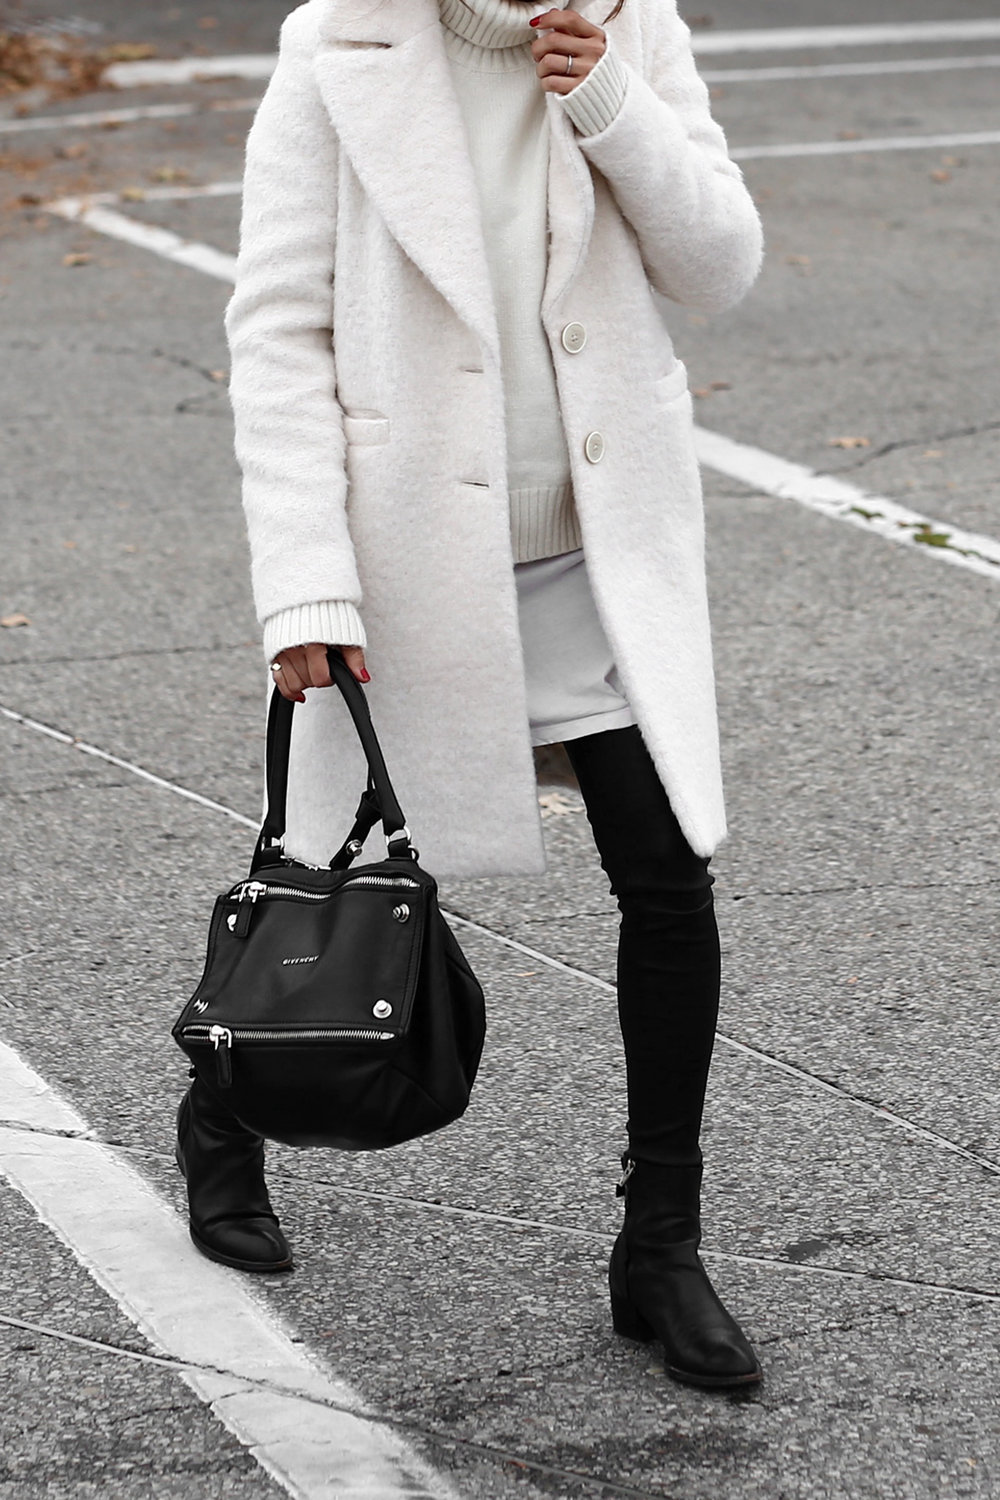 Winter White oversized knit, coat, leather leggings, Givenchy leopard print studded boots and Givenchy Pandora bag street style_2696 copy.jpg